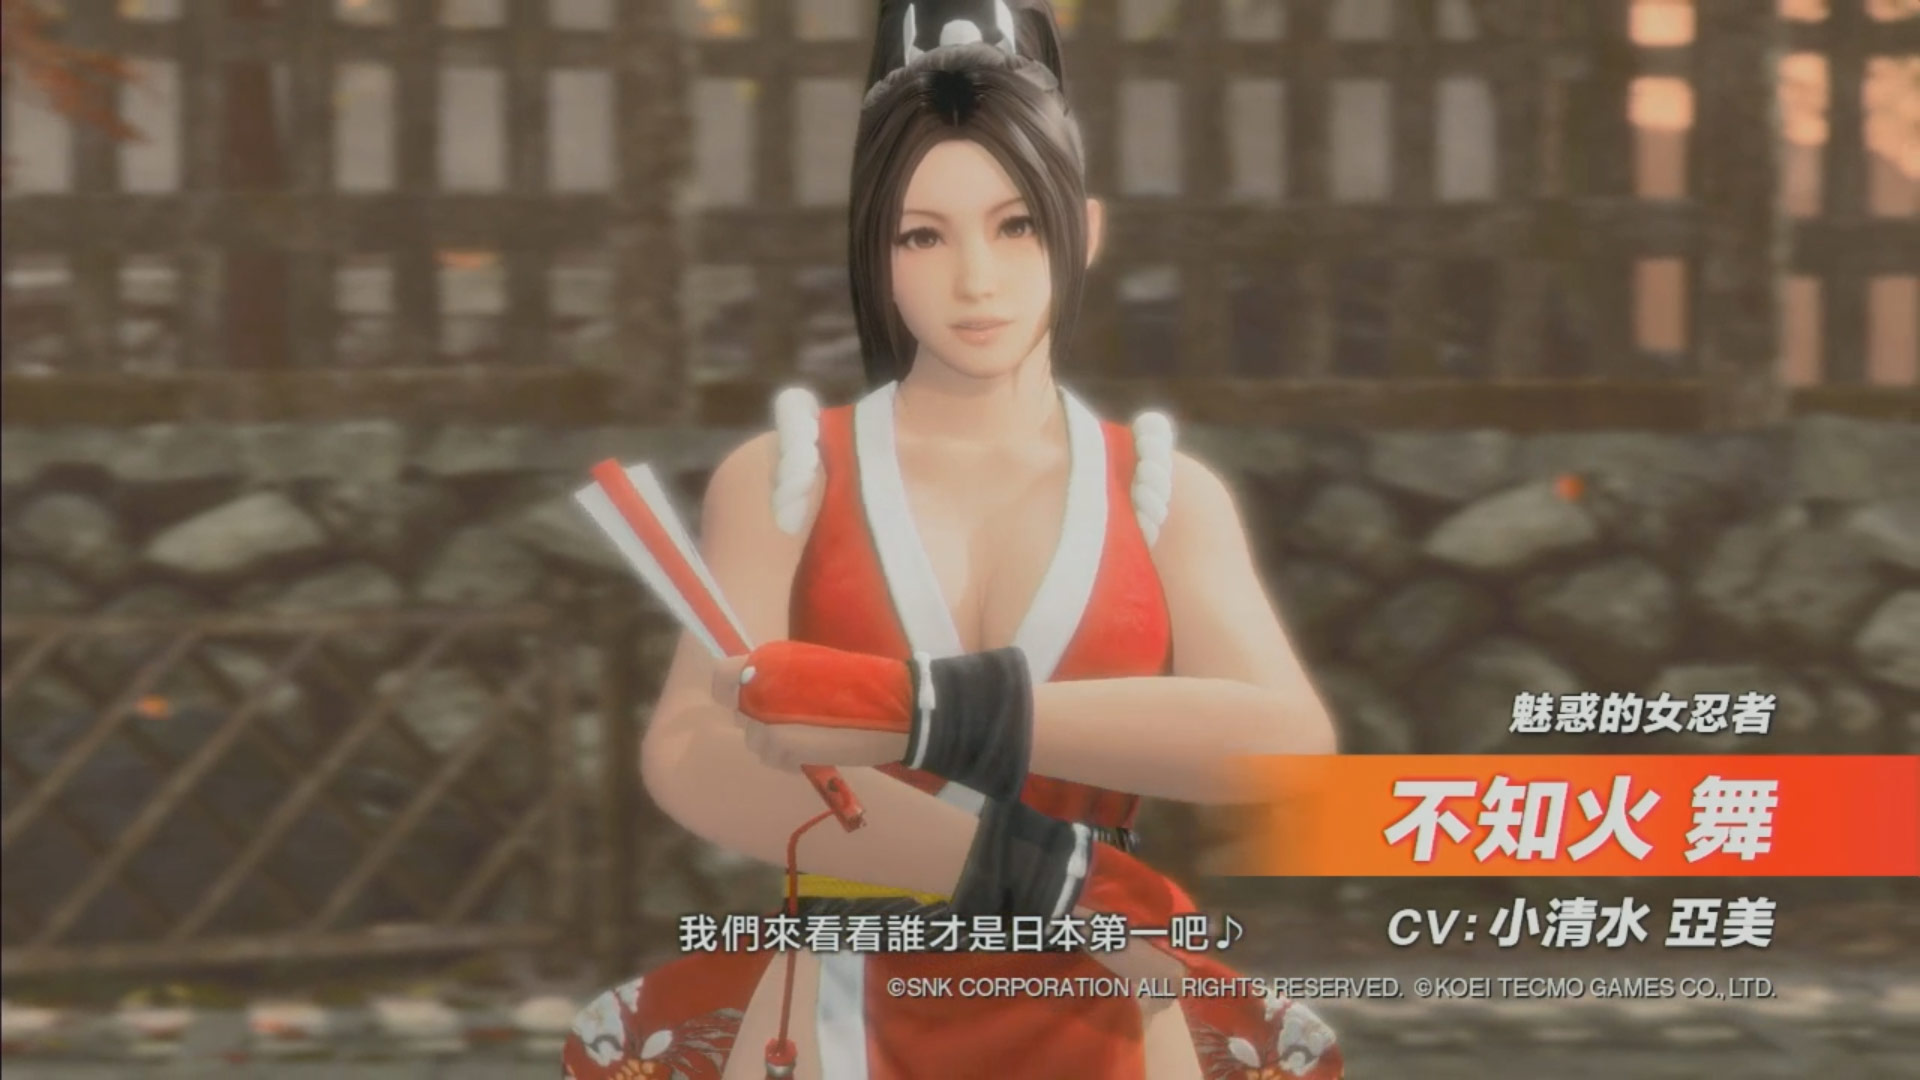 Dead Or Alive 6 Mai And Kula Trailer Images 1 Out Of 9 Image Gallery